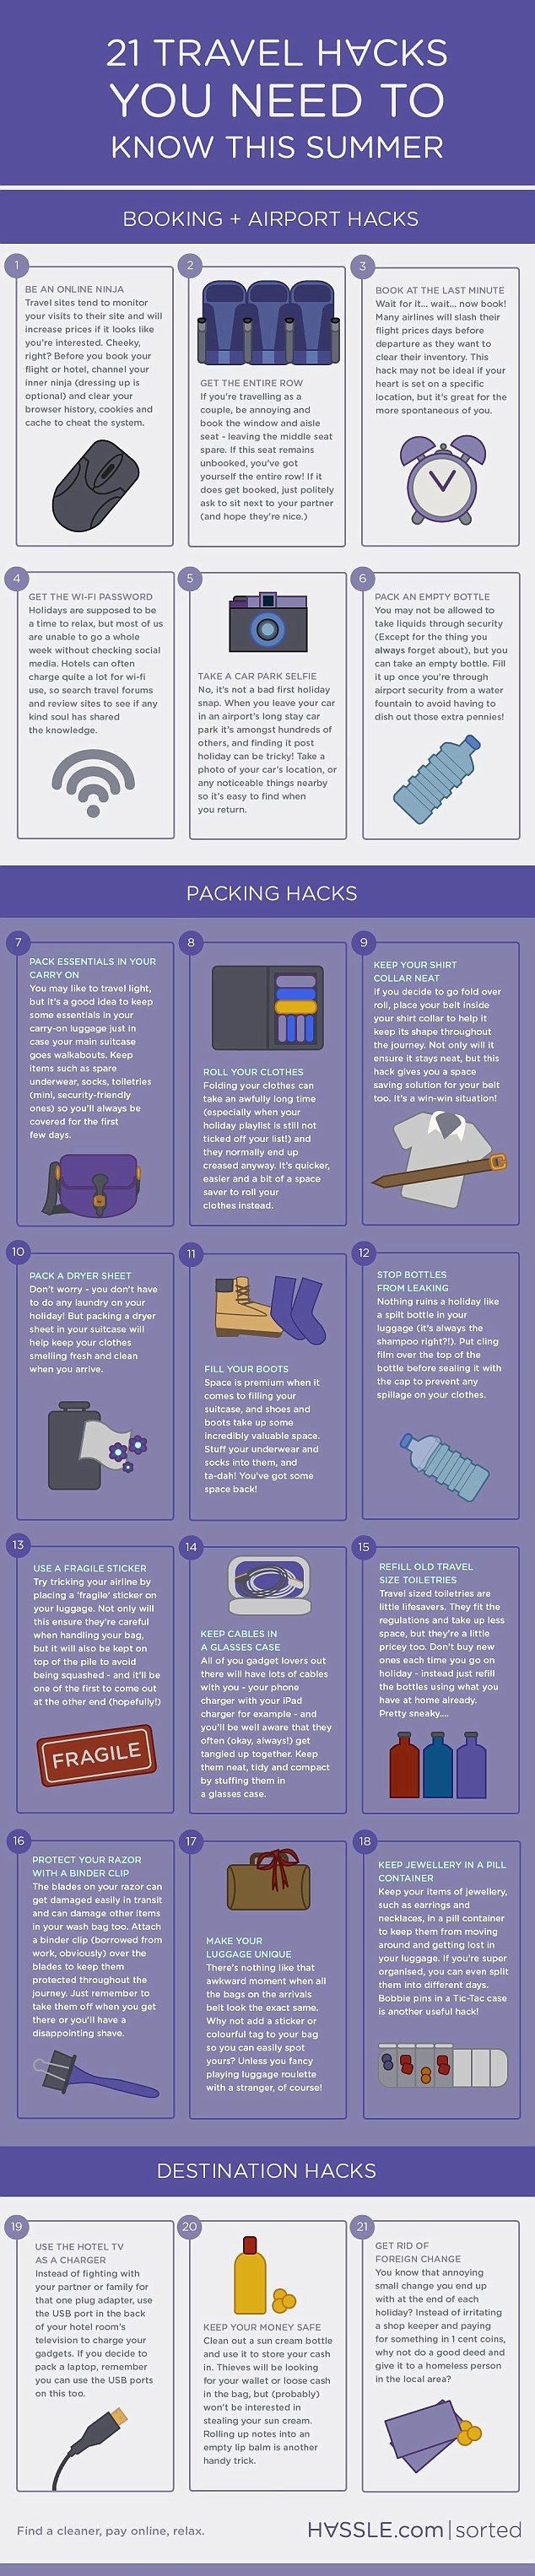 Infographic shows the must-need hacks for easy, breezy travel this summer